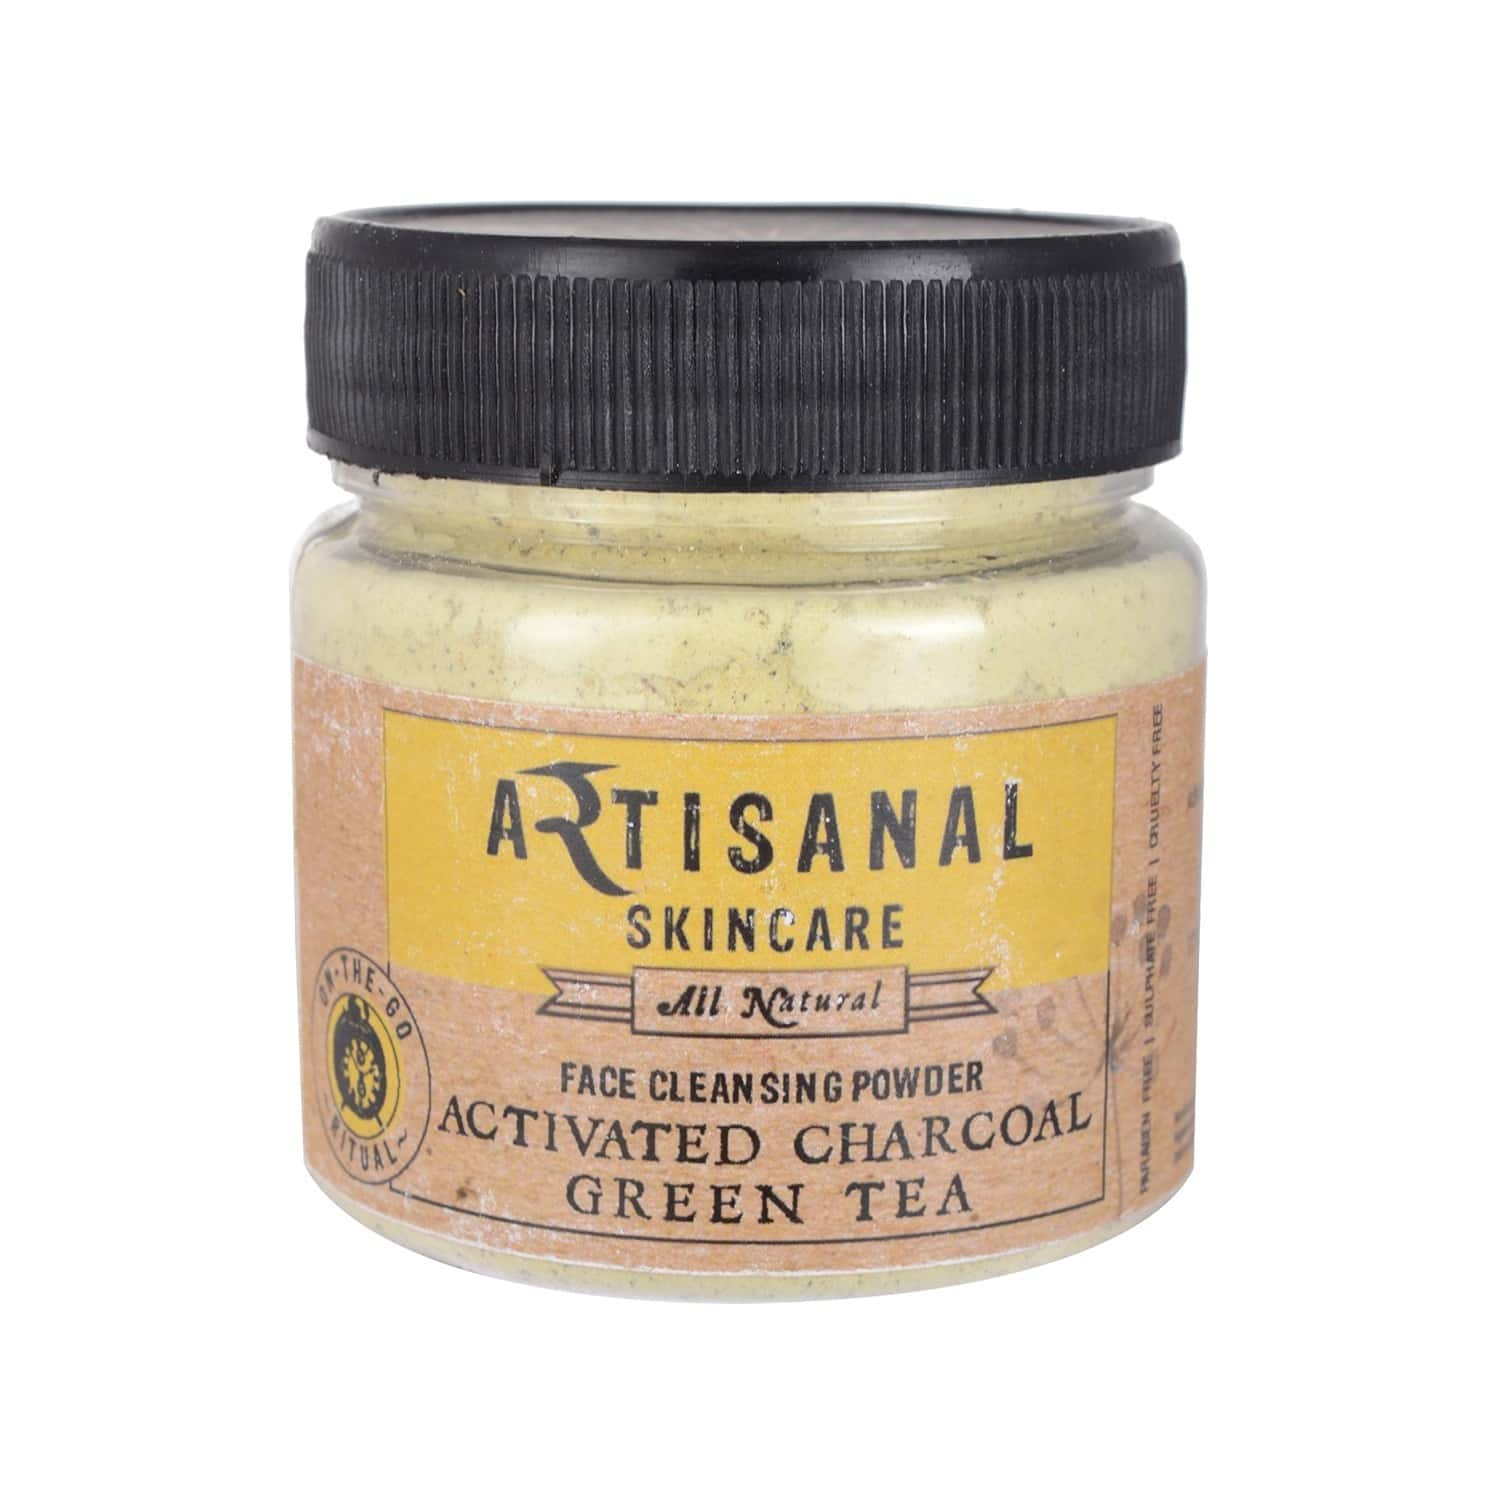 Artisanal Skincare Activated Charcoal & Green Tea Face Cleansing Powder, 100 Gm